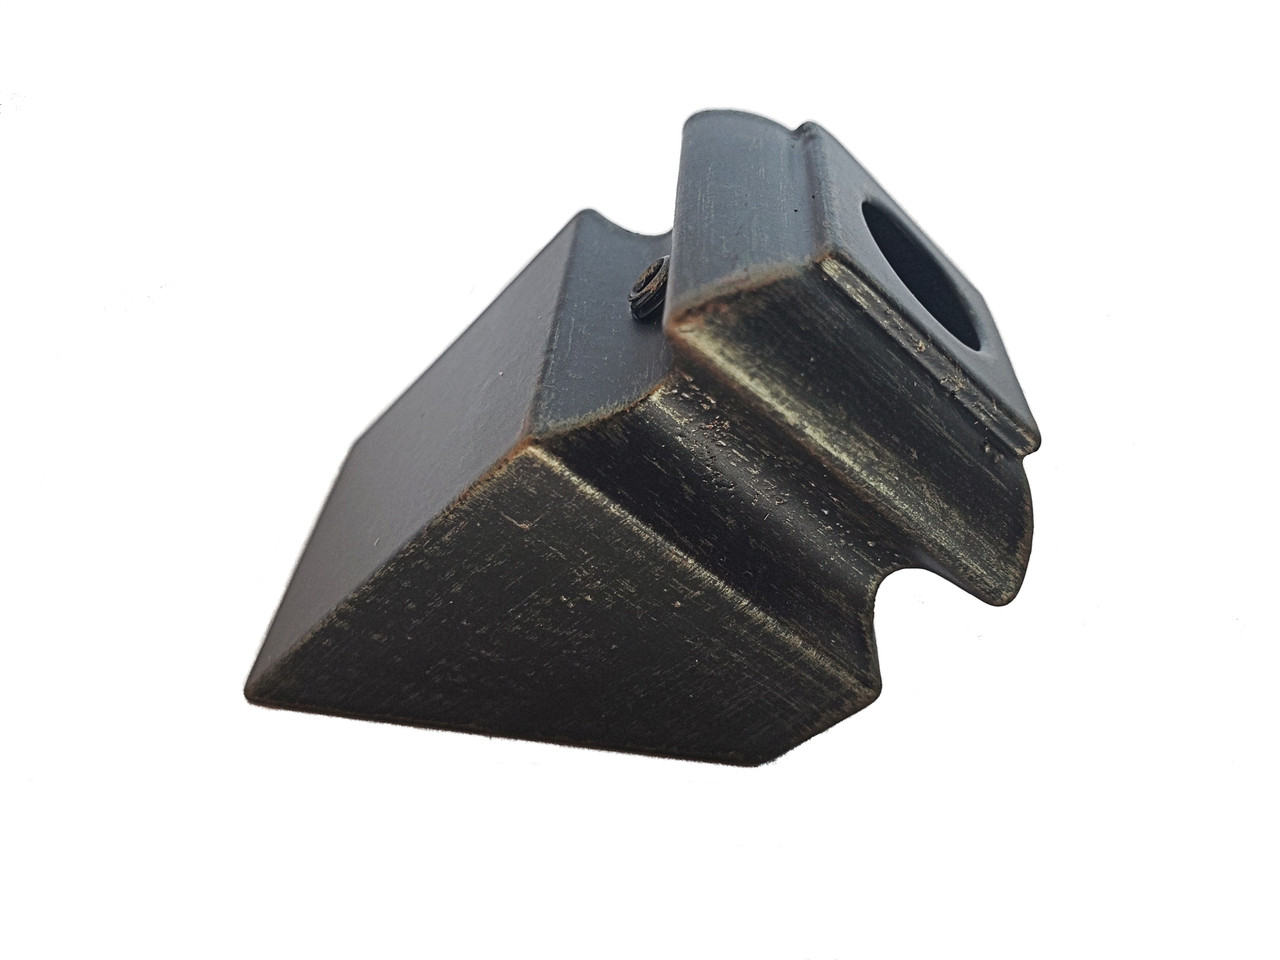 SHR904 12mm Slanted Shoe with Set Screw shown in Rubbed Bronze